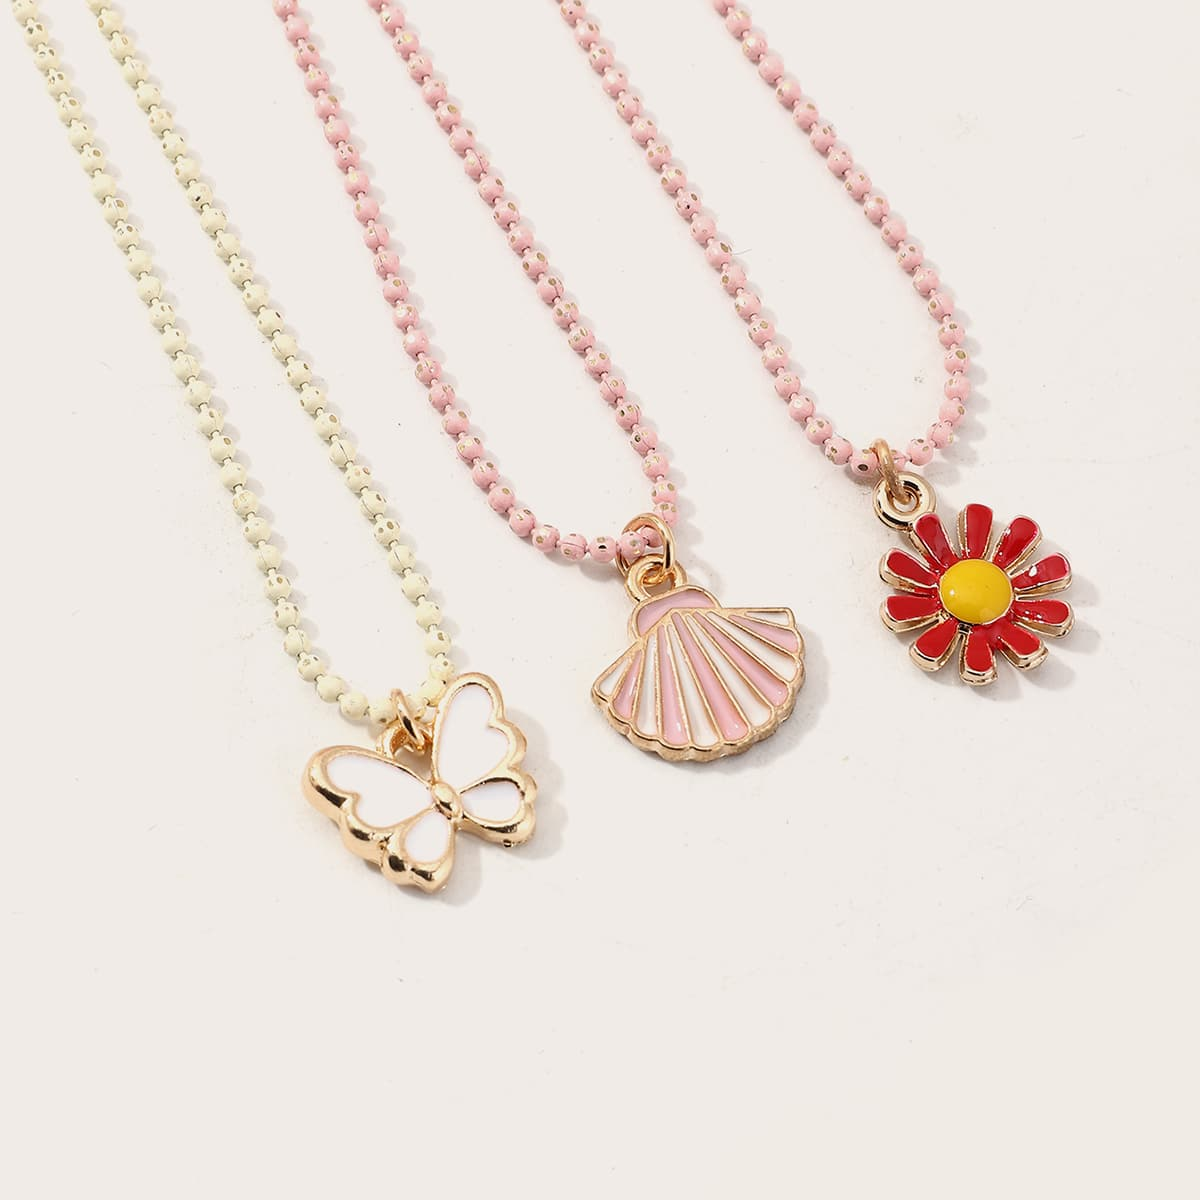 3pcs Toddler Girls Shell & Butterfly Charm Necklace